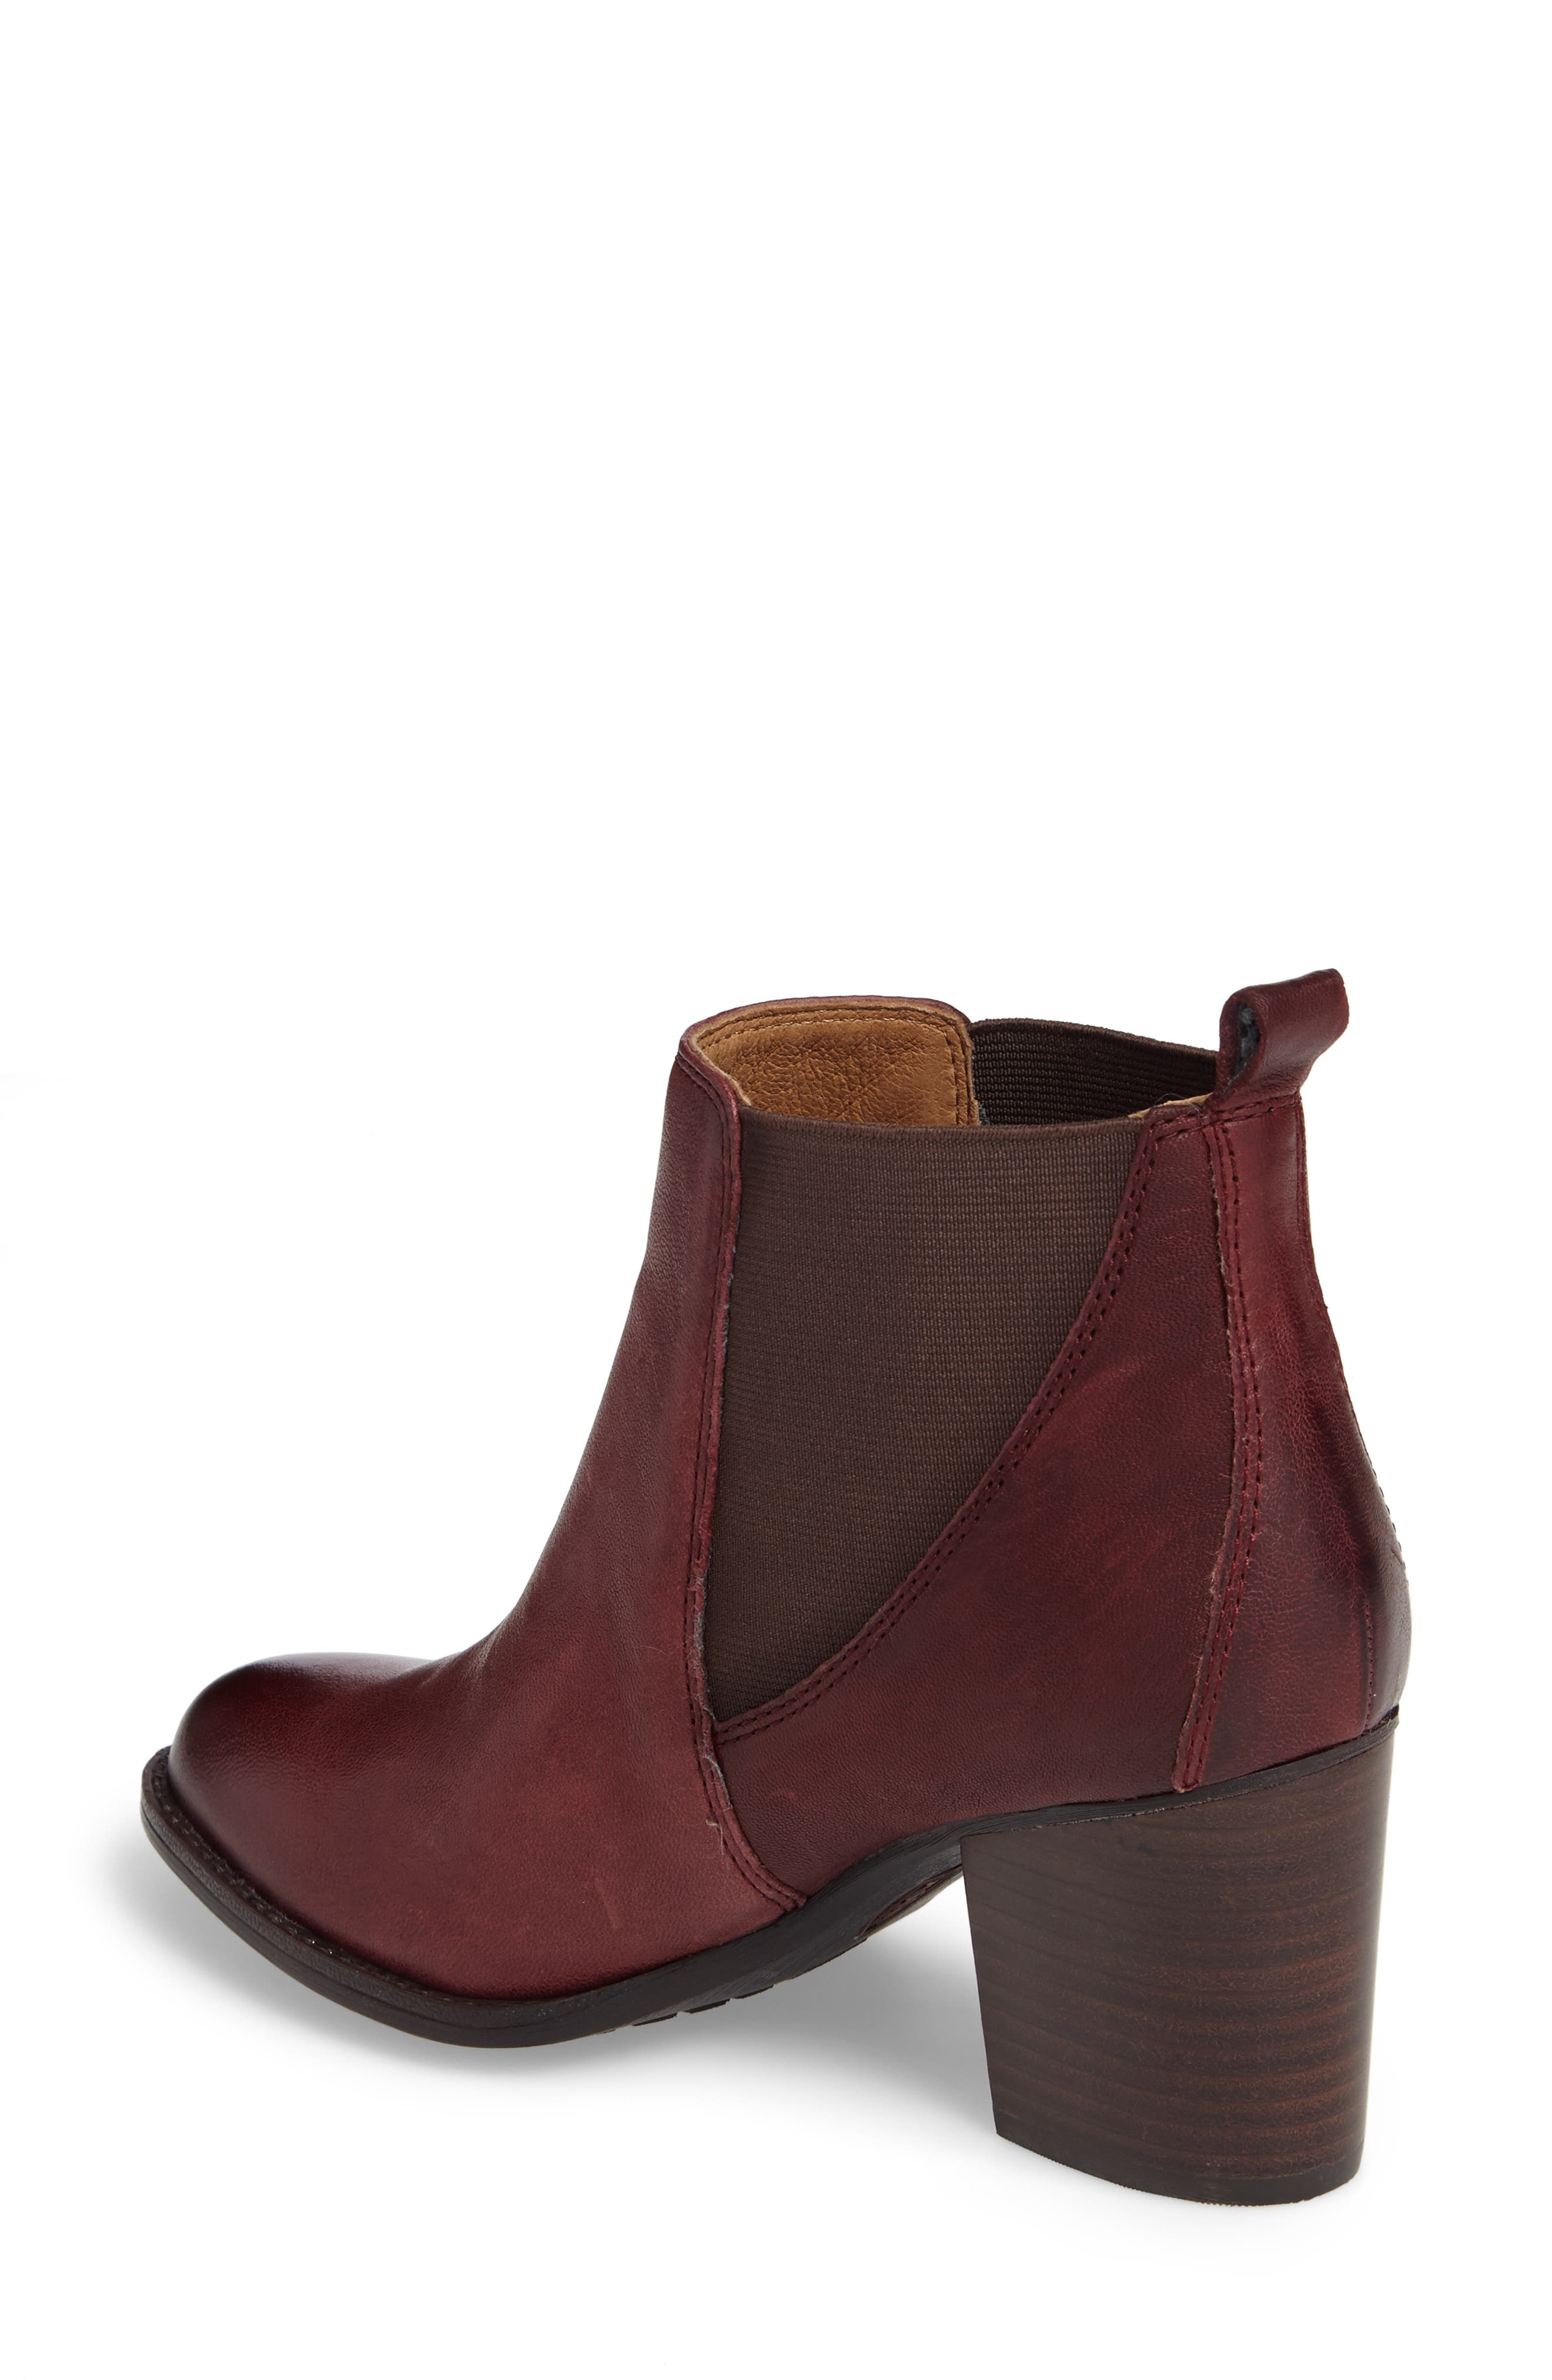 Welling Bootie,                             Alternate thumbnail 2, color,                             Wine Red Leather